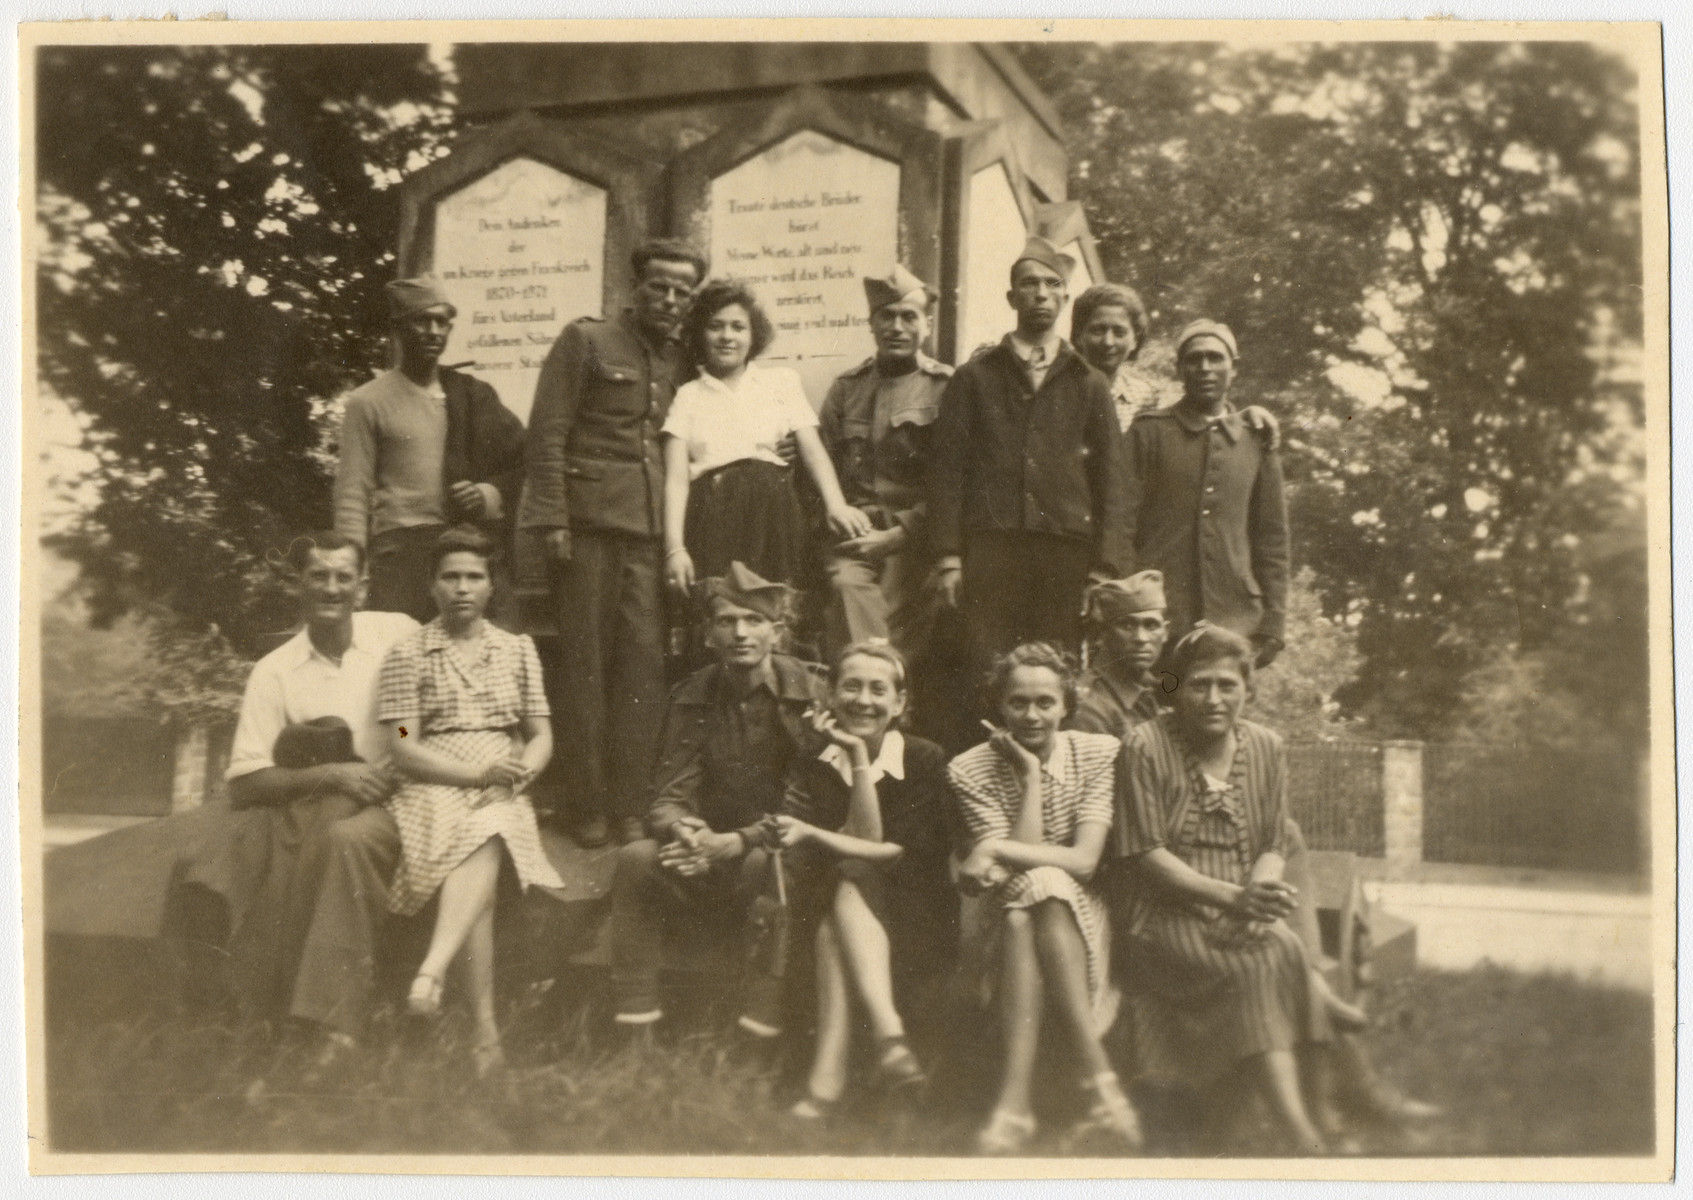 Group portrait of displaced persons and Soviet soldiers standing in front of a memorial shortly after liberation.  Livia Vermes is pictured in the front row, second from the right.